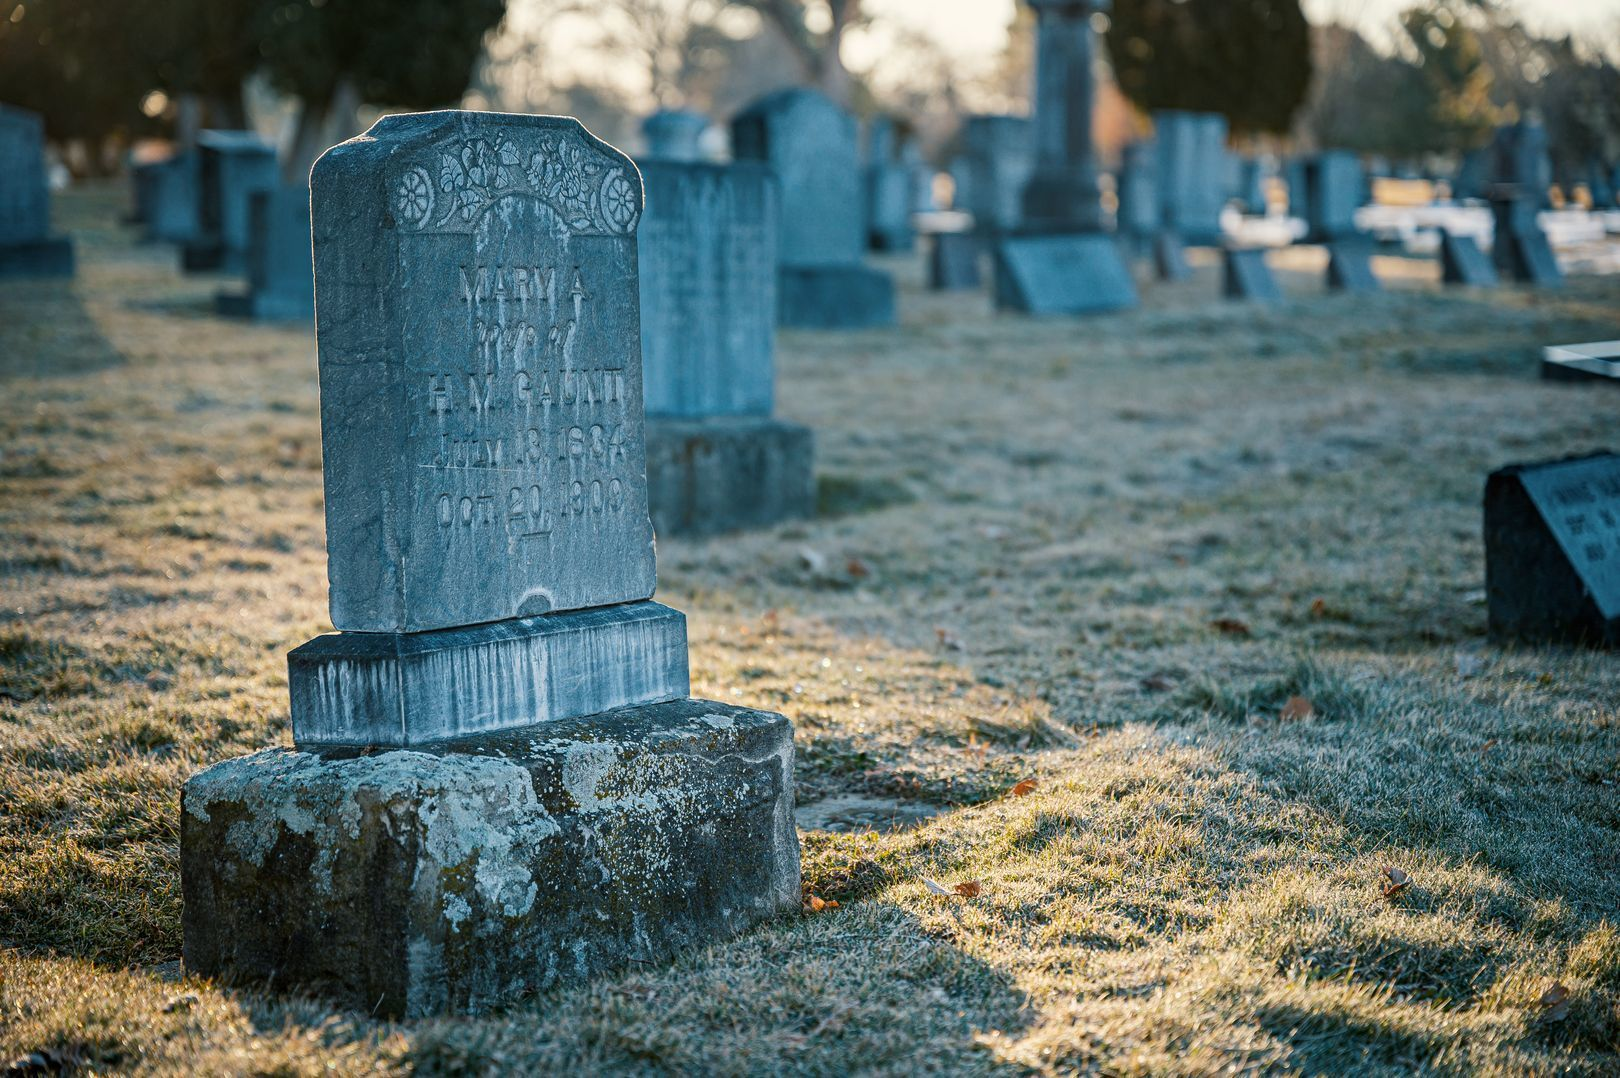 Discounted burial plots